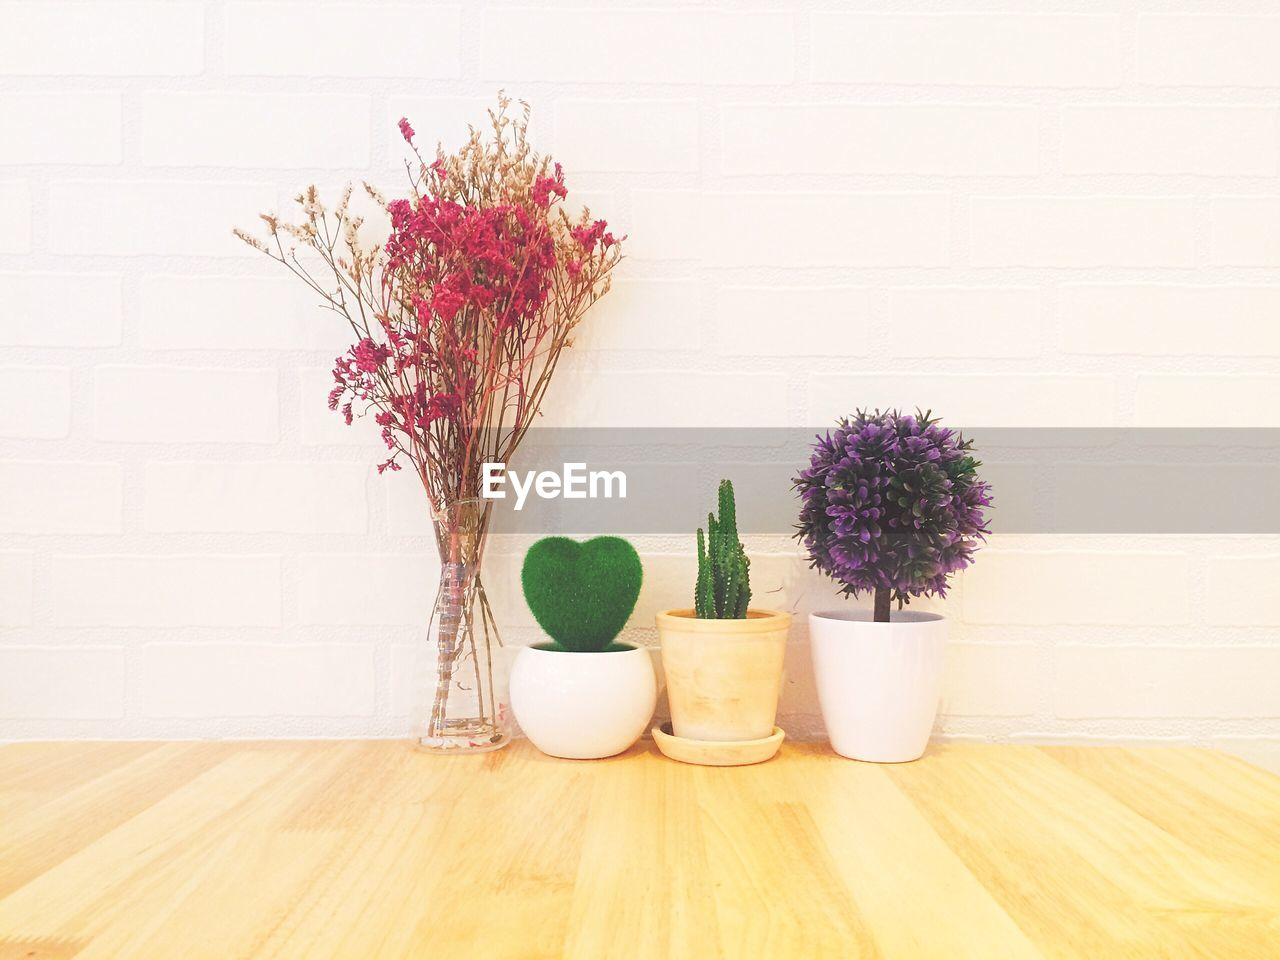 flower, plant, flowering plant, indoors, no people, still life, vase, nature, wall - building feature, container, table, freshness, growth, purple, decoration, wood - material, group of objects, flooring, potted plant, fragility, flower head, flower arrangement, flower pot, bouquet